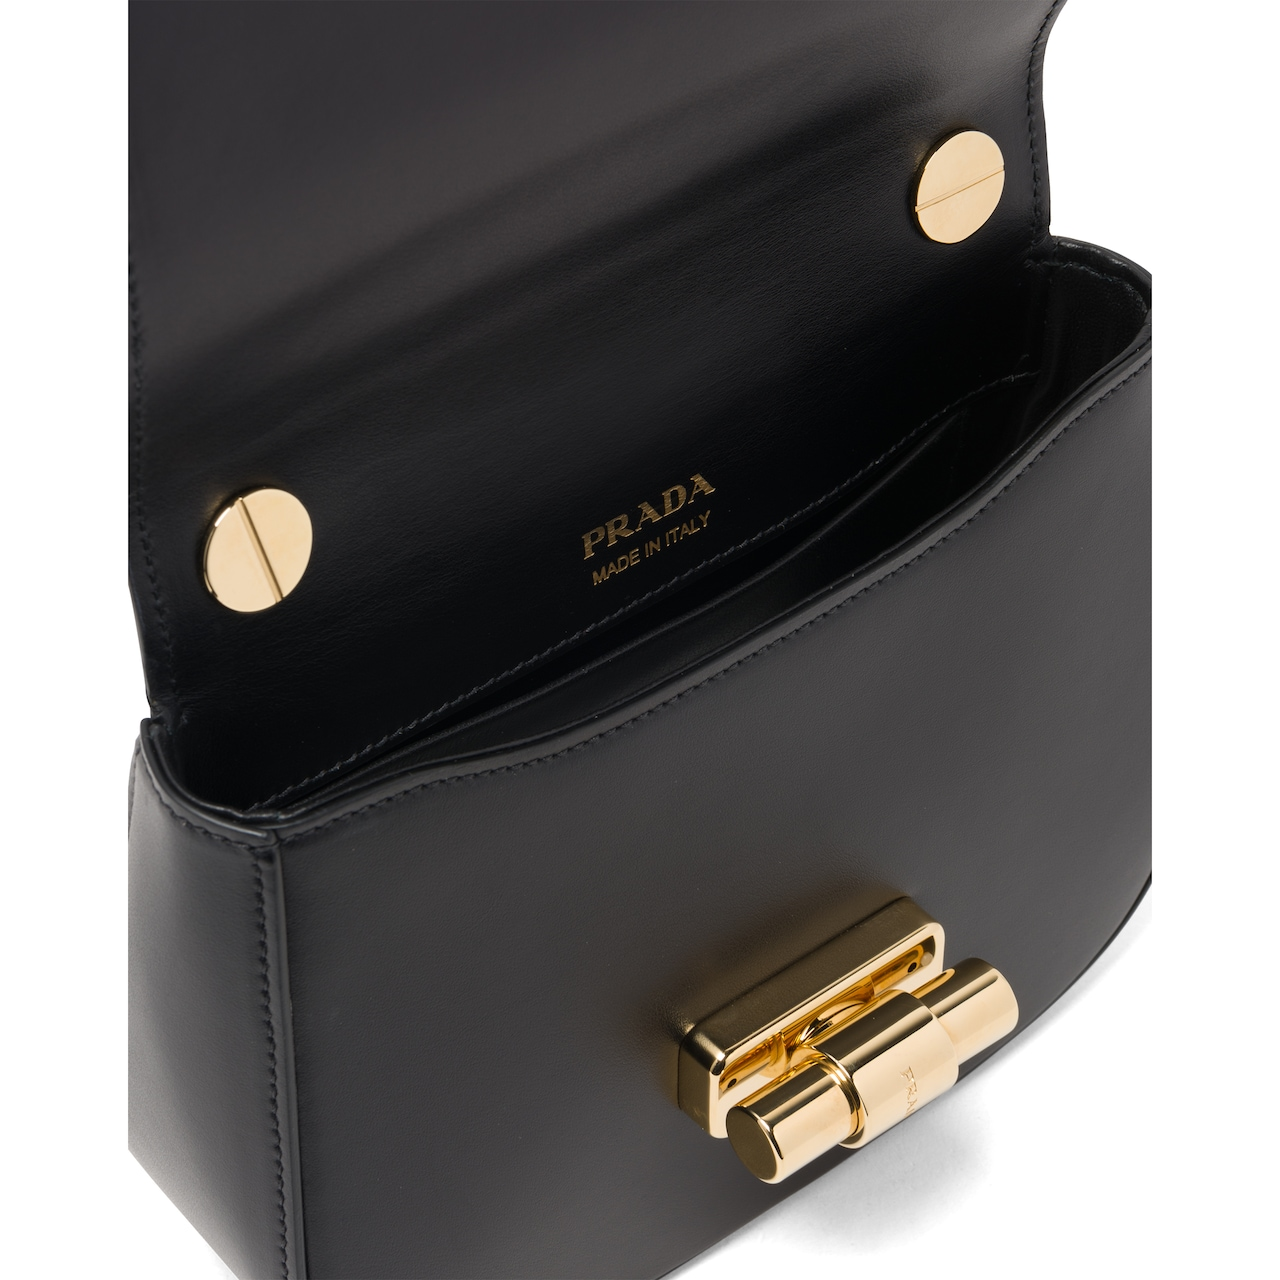 Prada Leather shoulder bag 5